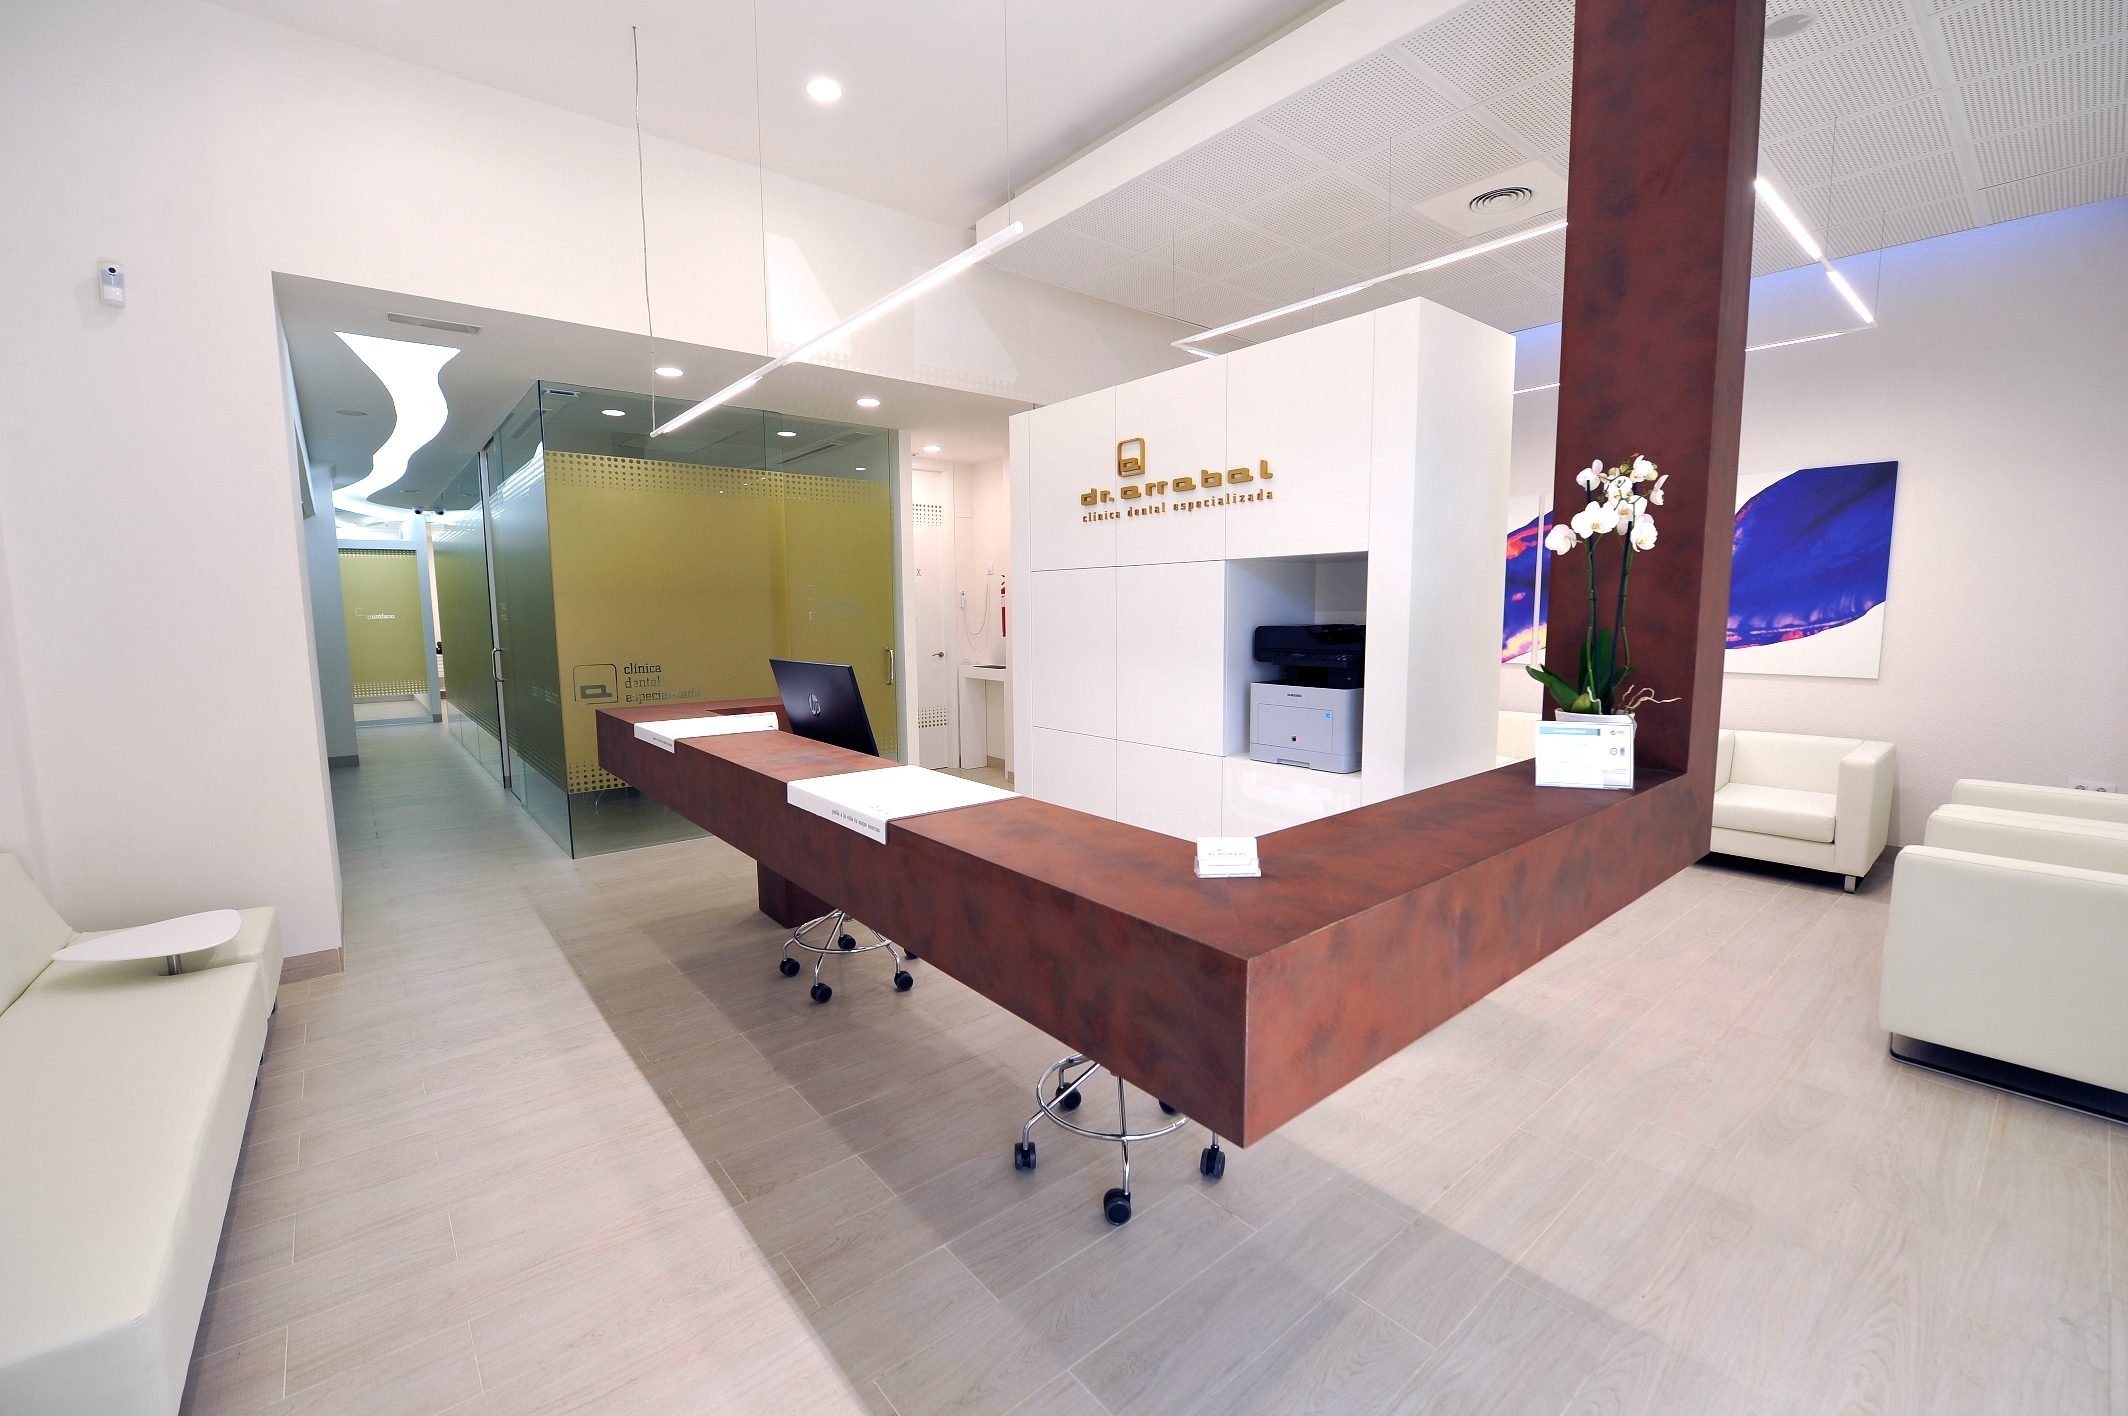 arquitecto clinica dental 1